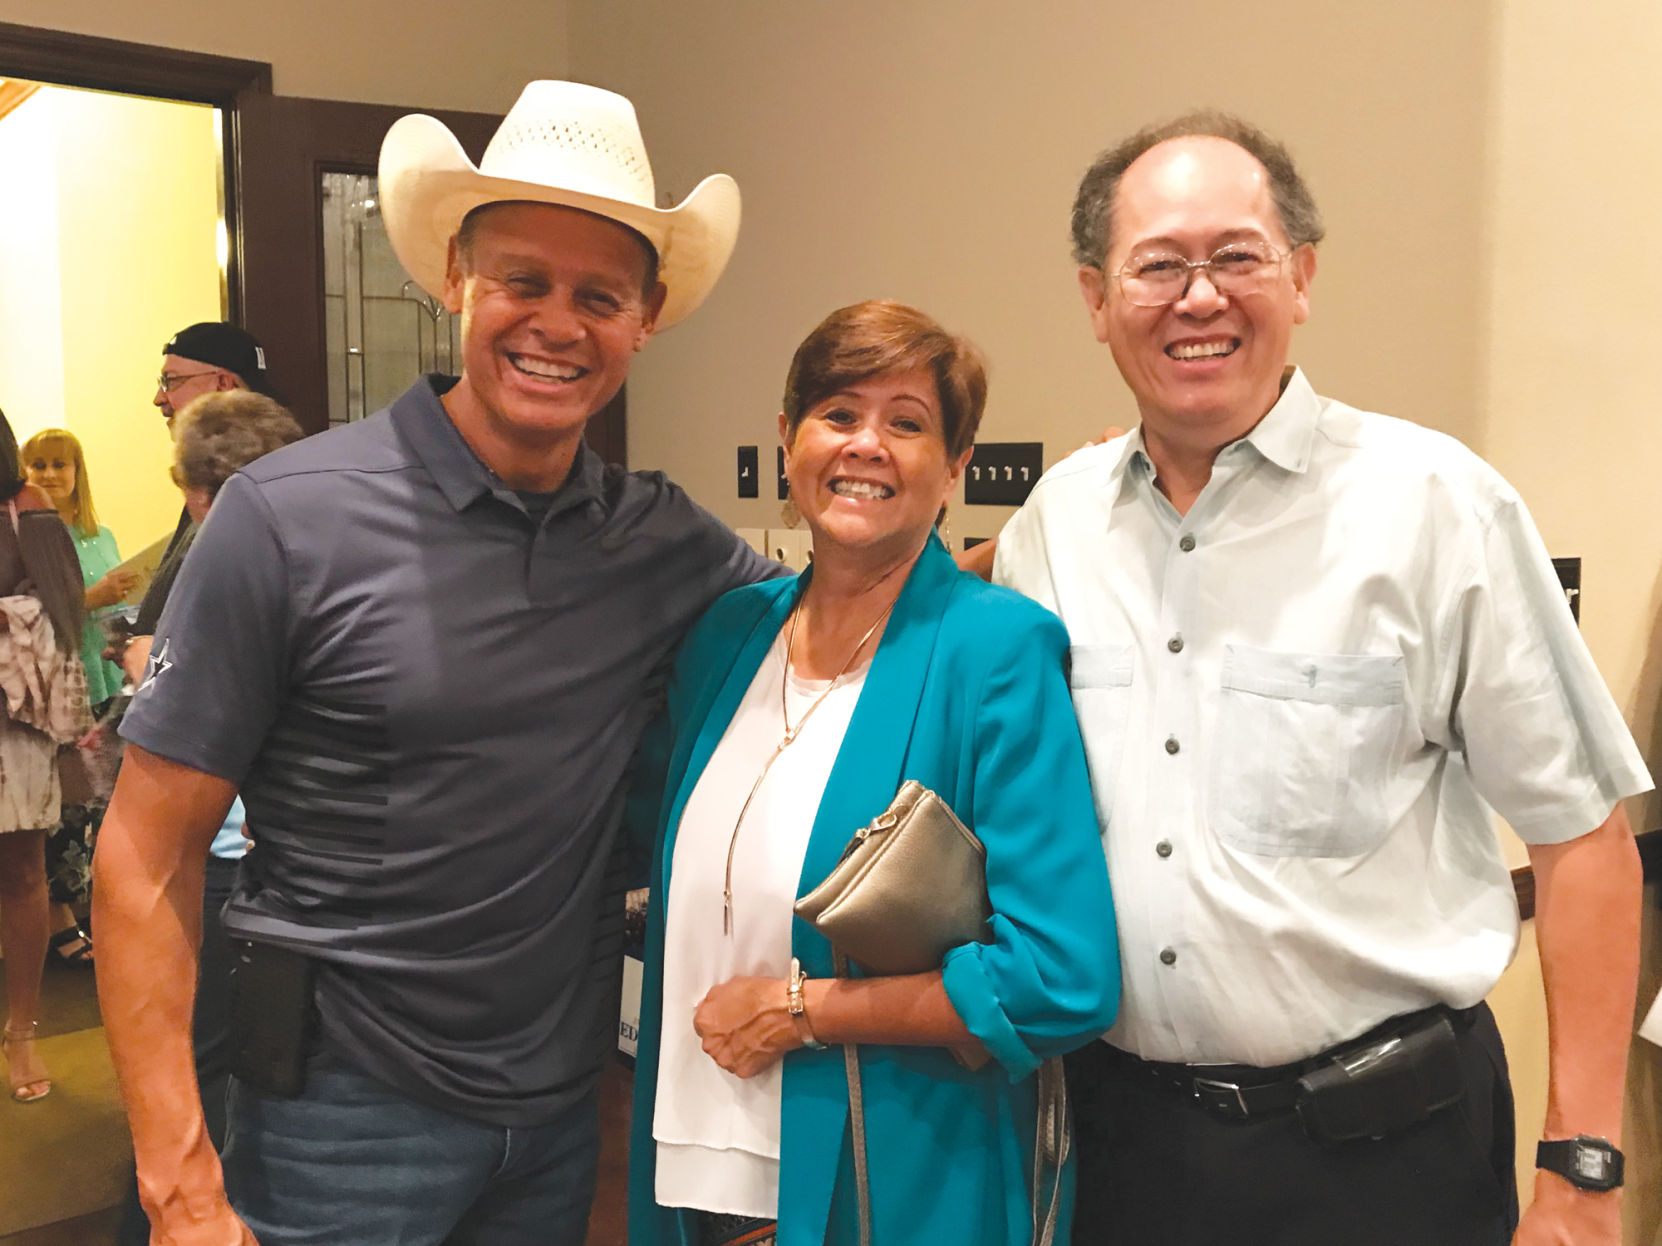 Evening with Our Star honors hometown musician, Neal McCoy | Jacksonville Progress